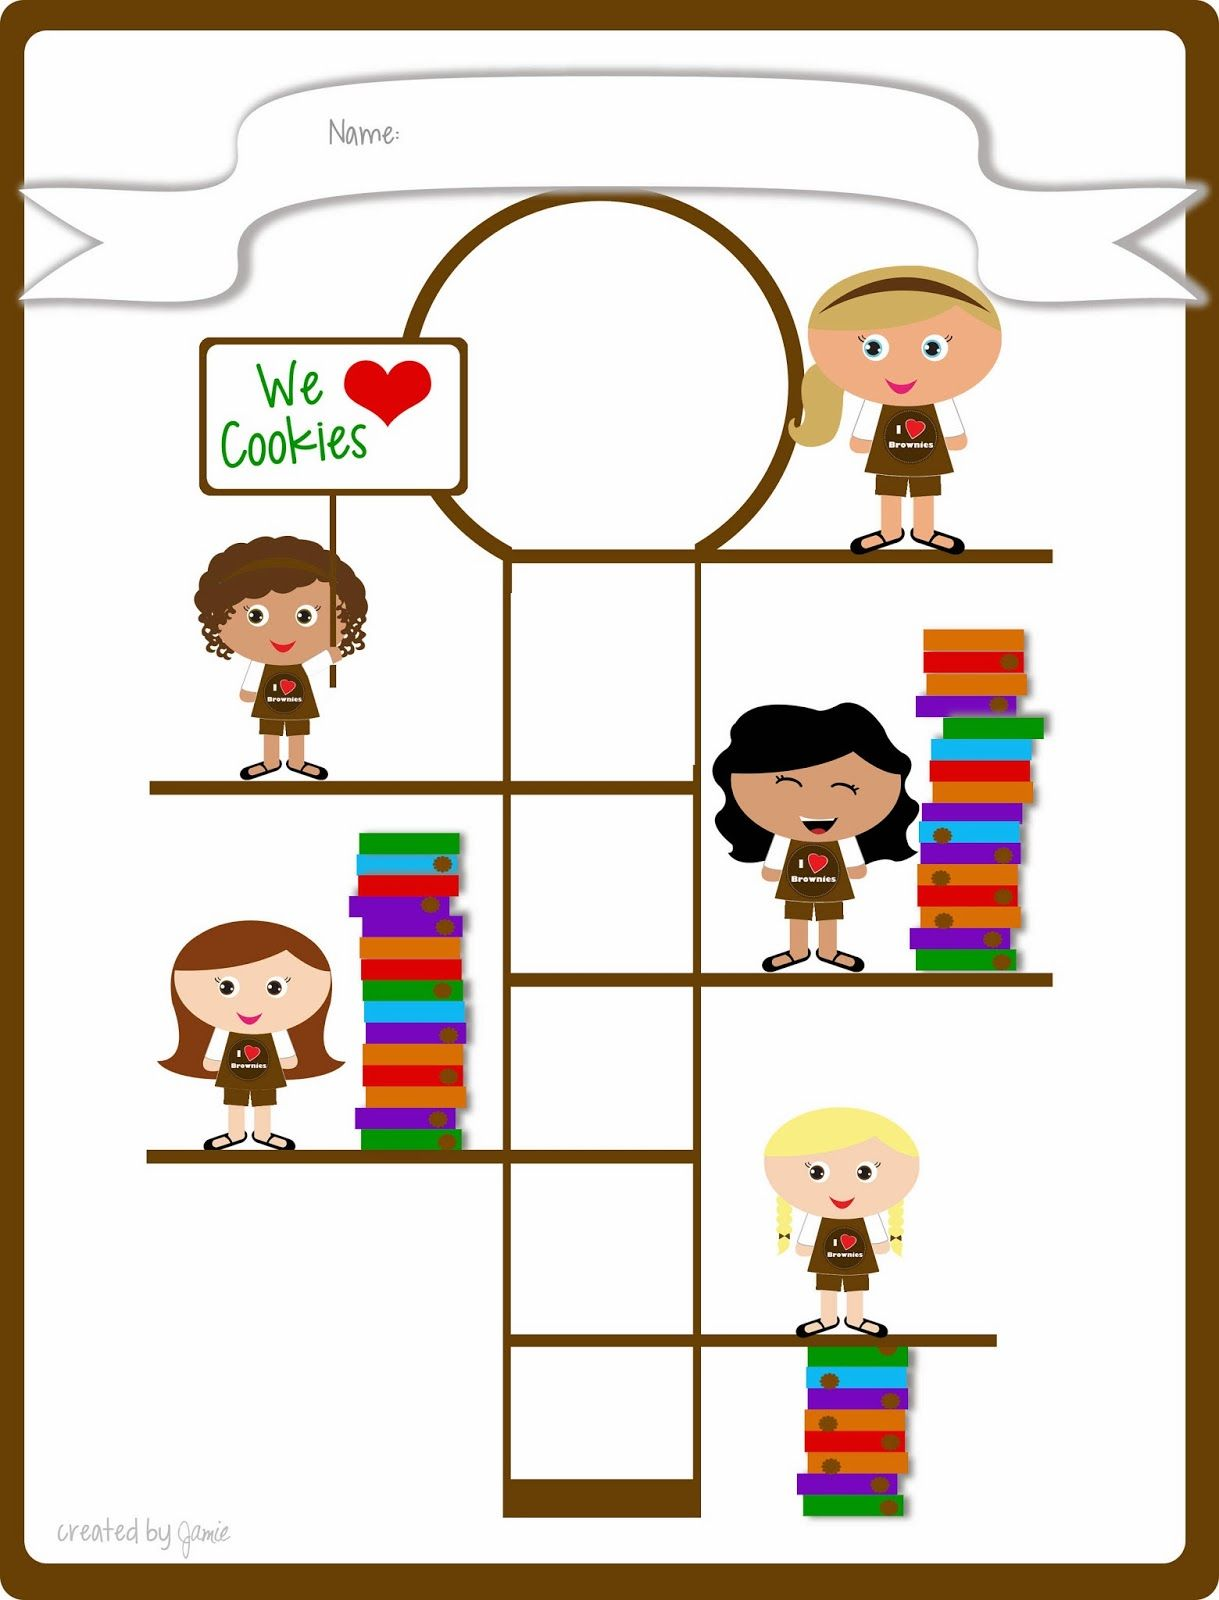 Girl Scout Cookie Sales - Free Printable Goal Poster! | Im a Cookie ...